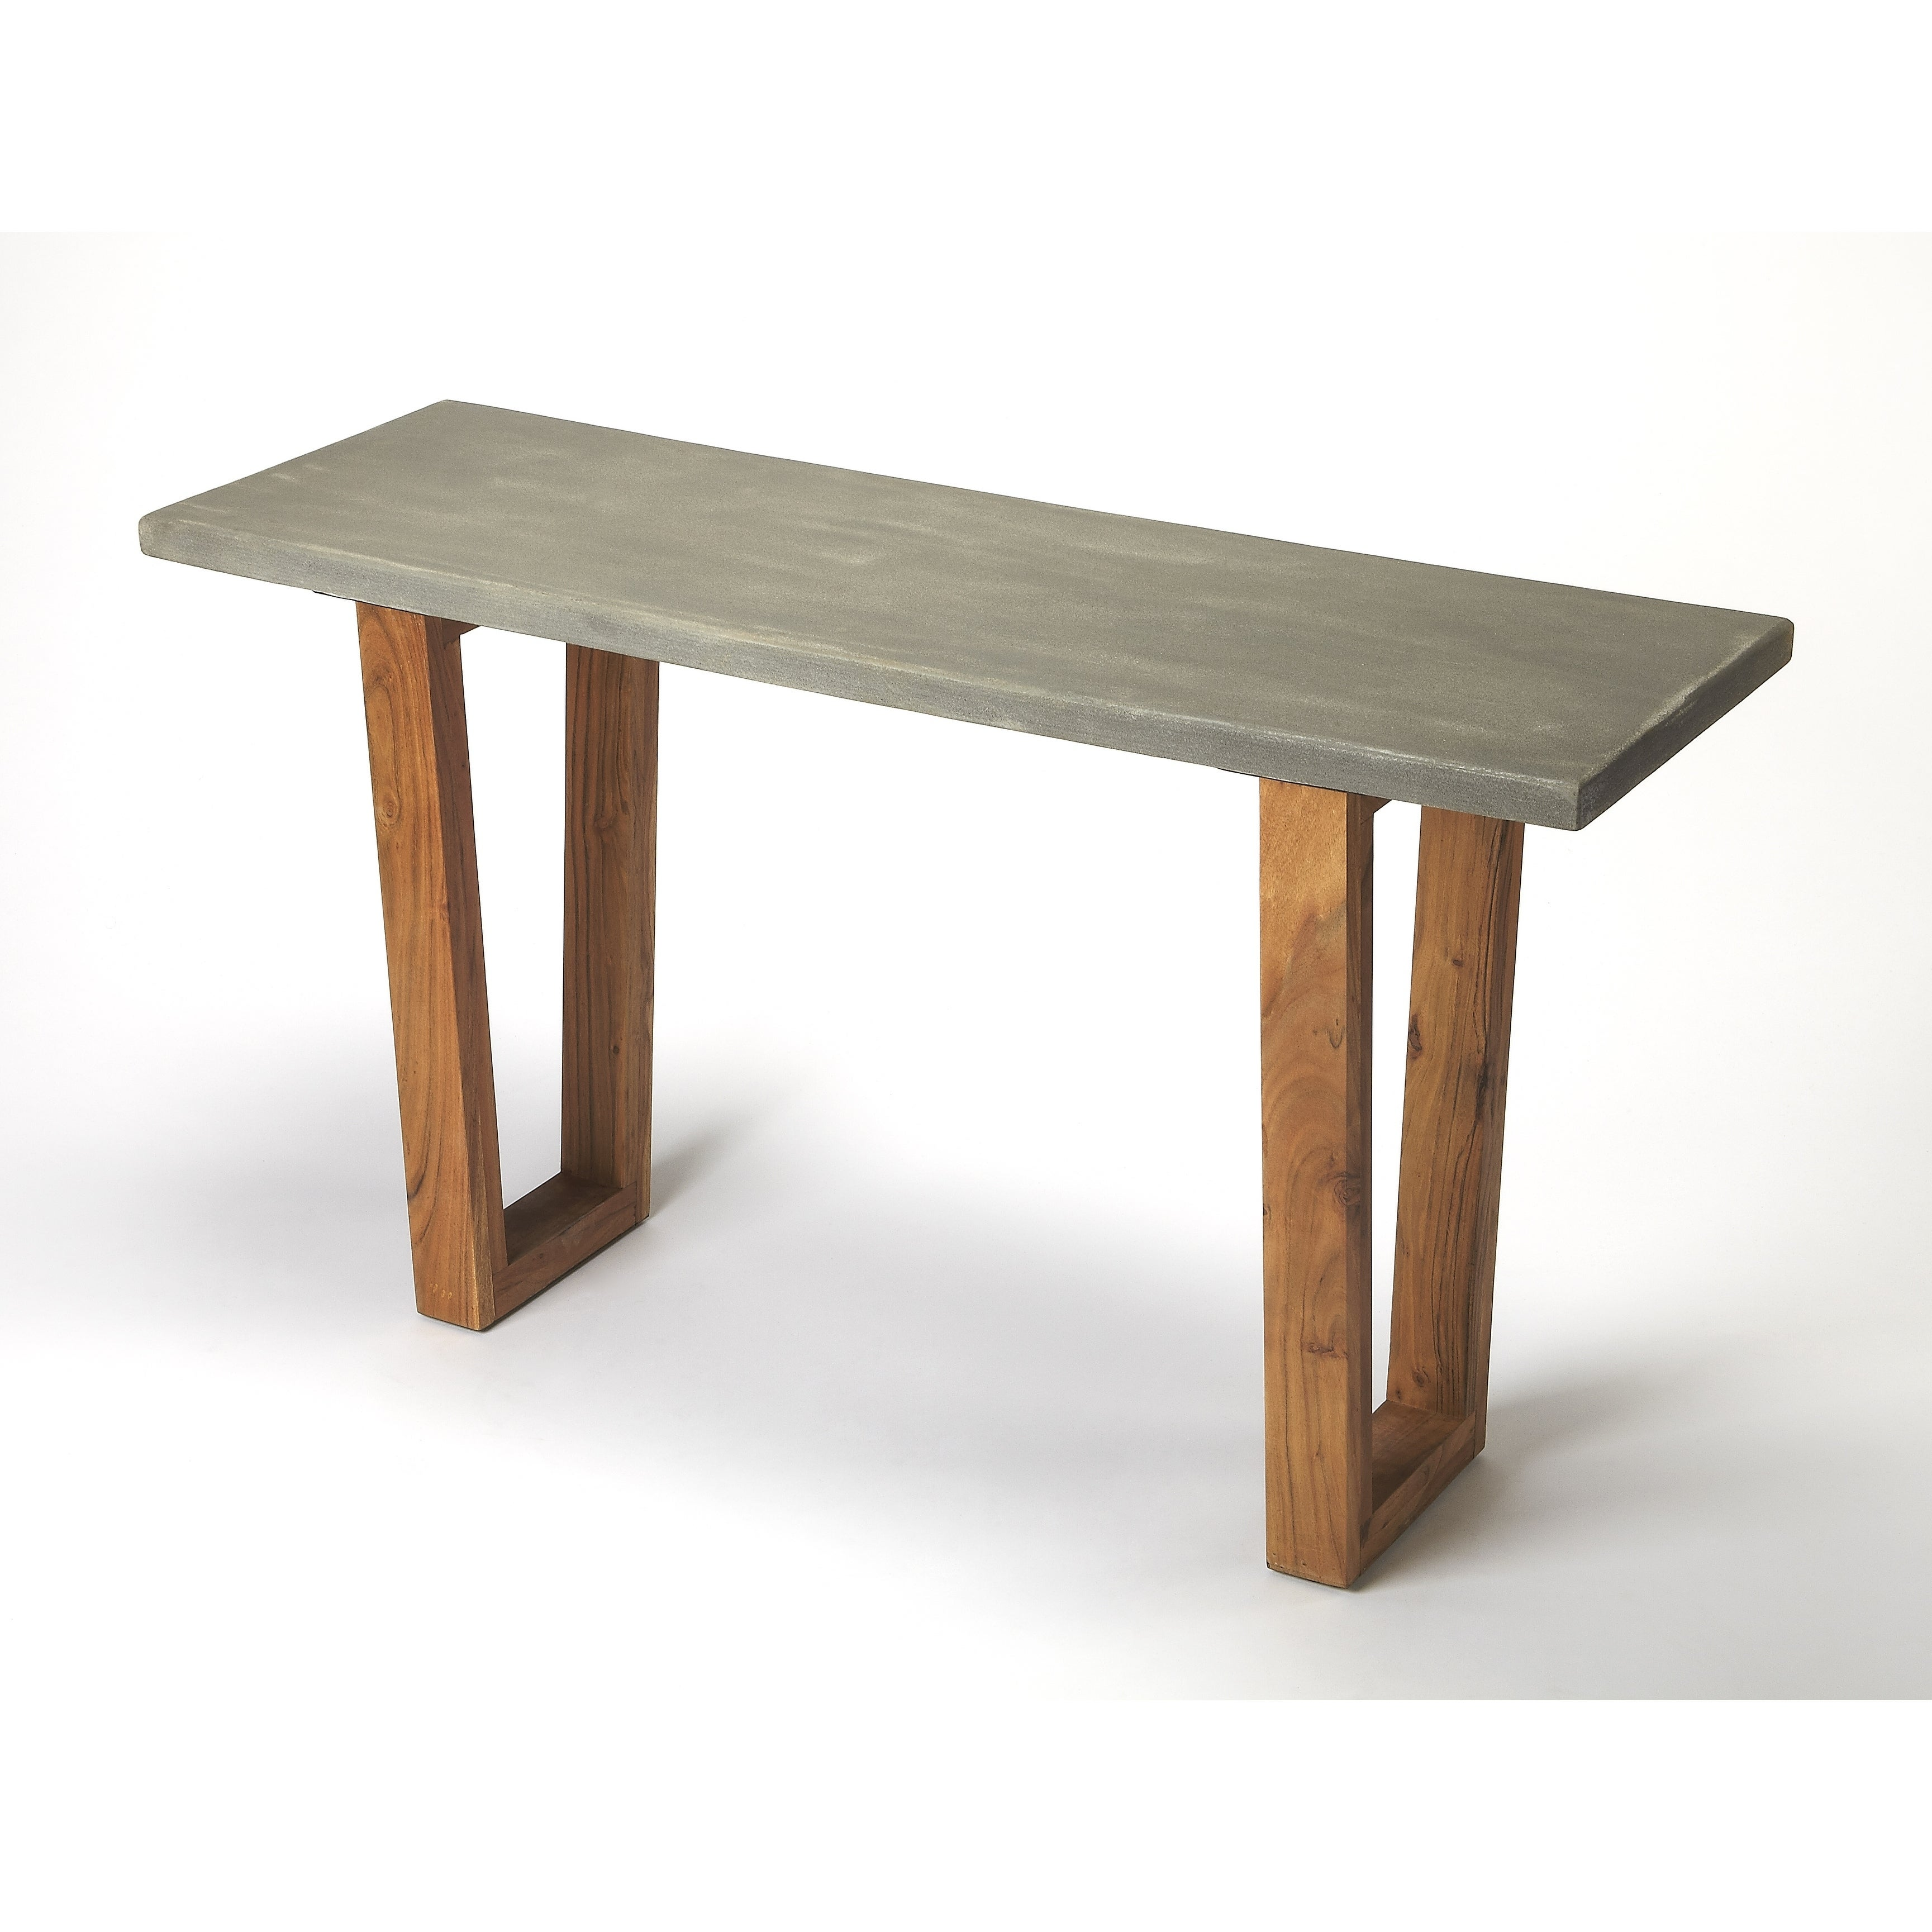 concrete and wood furniture. Butler Massey Concrete \u0026 Wood Console Table - Free Shipping Today Overstock 25249422 And Furniture